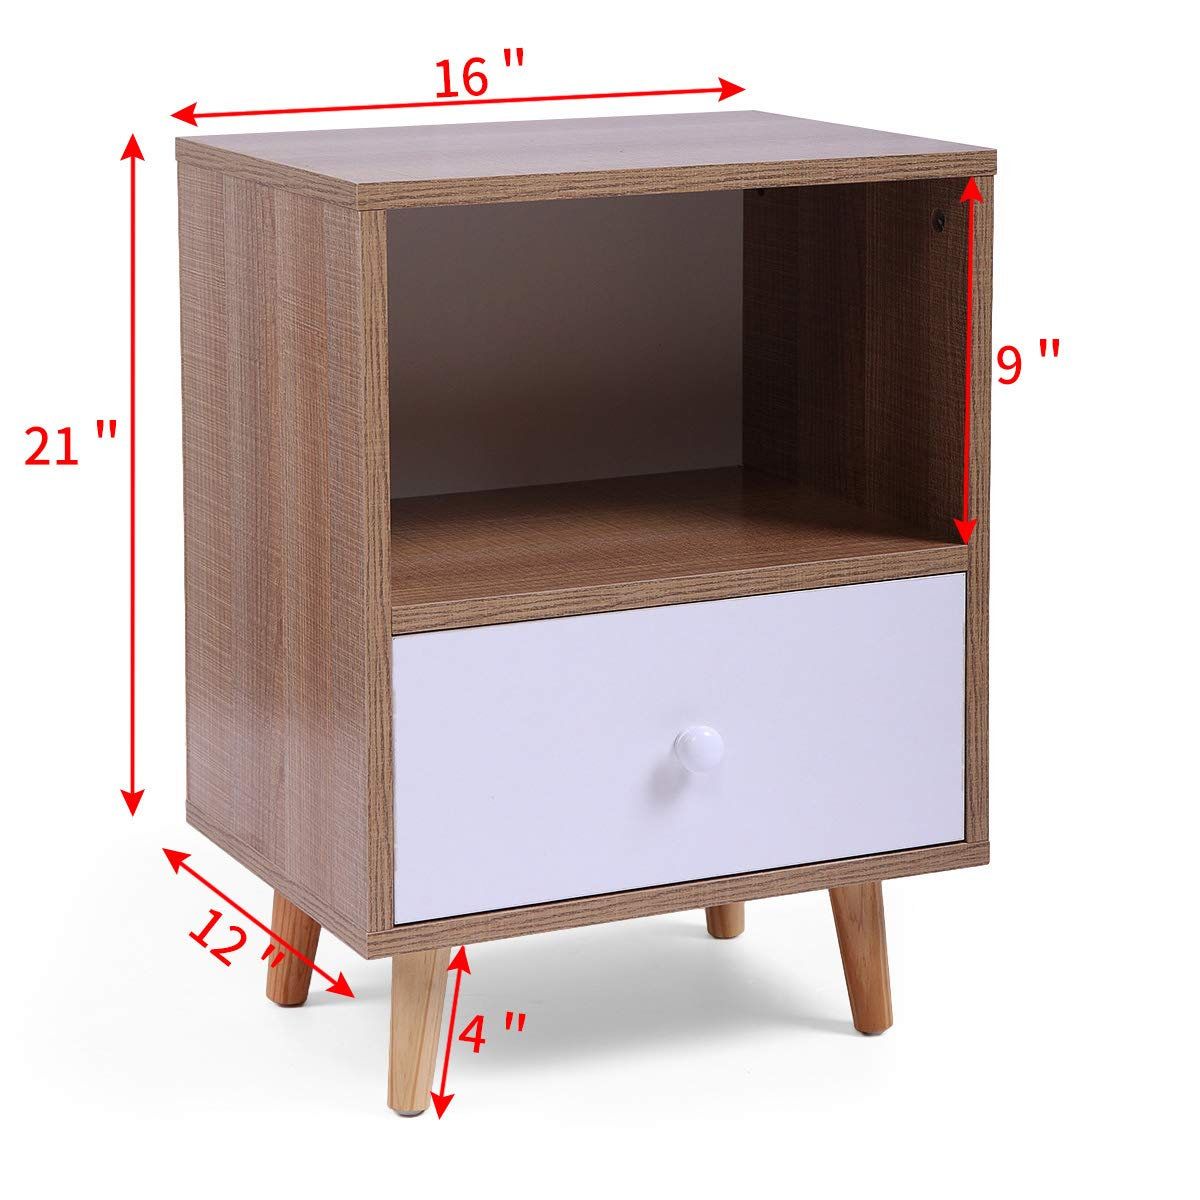 Set of 2 Night Stand 2 Layer w/Drawer Bedside End Table Organizer Bedroom by Betterhomechoice (Image #3)